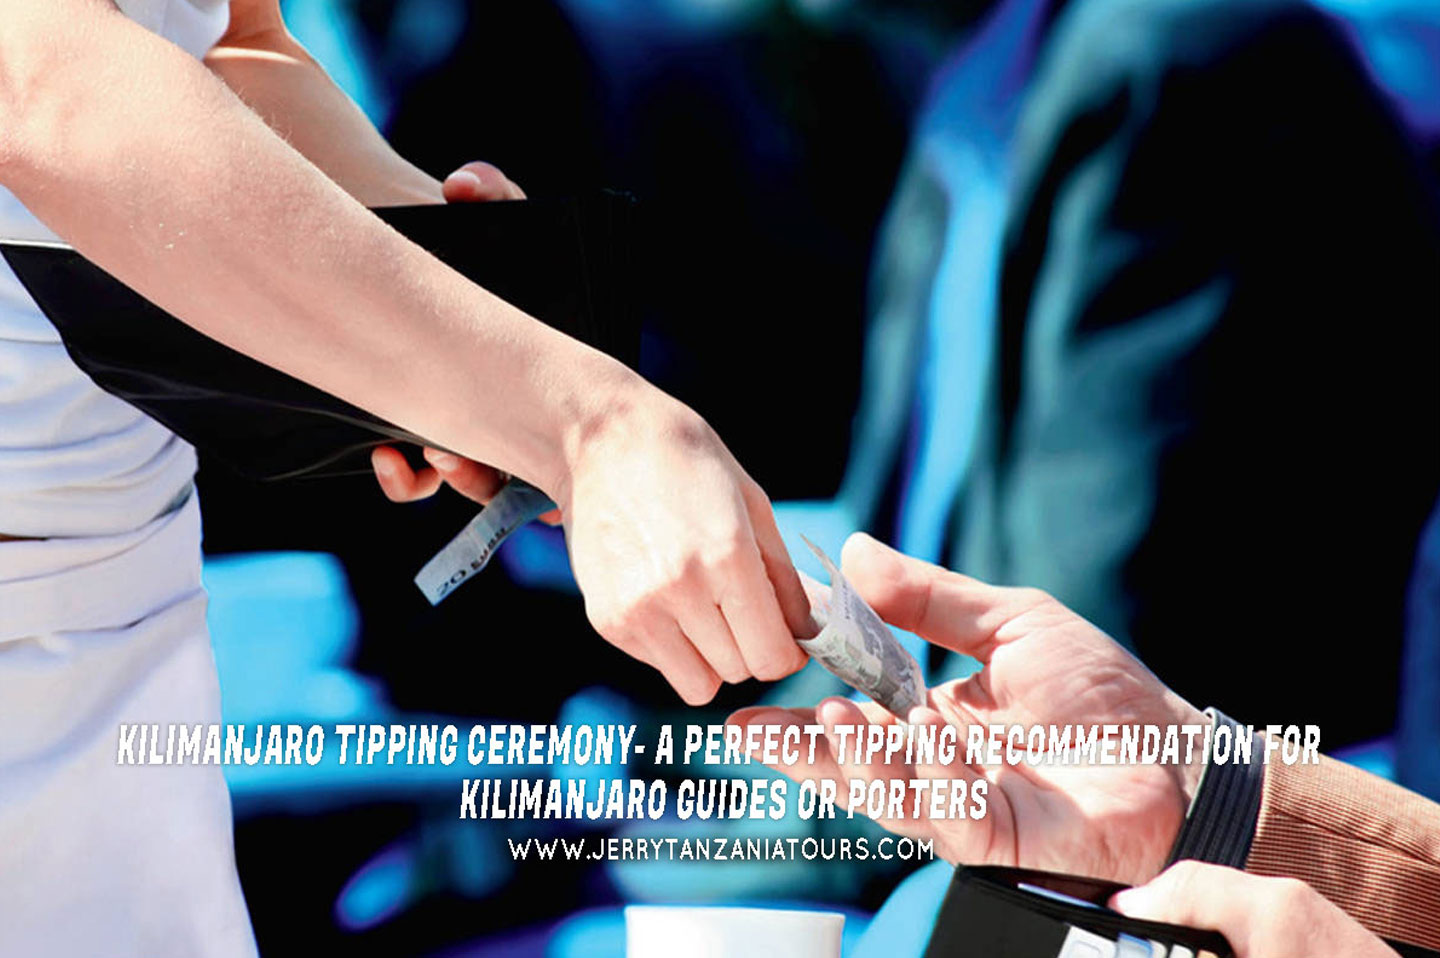 Kilimanjaro Tipping Ceremony- A Perfect Tipping Recommendation For Kilimanjaro Guides Or Porters